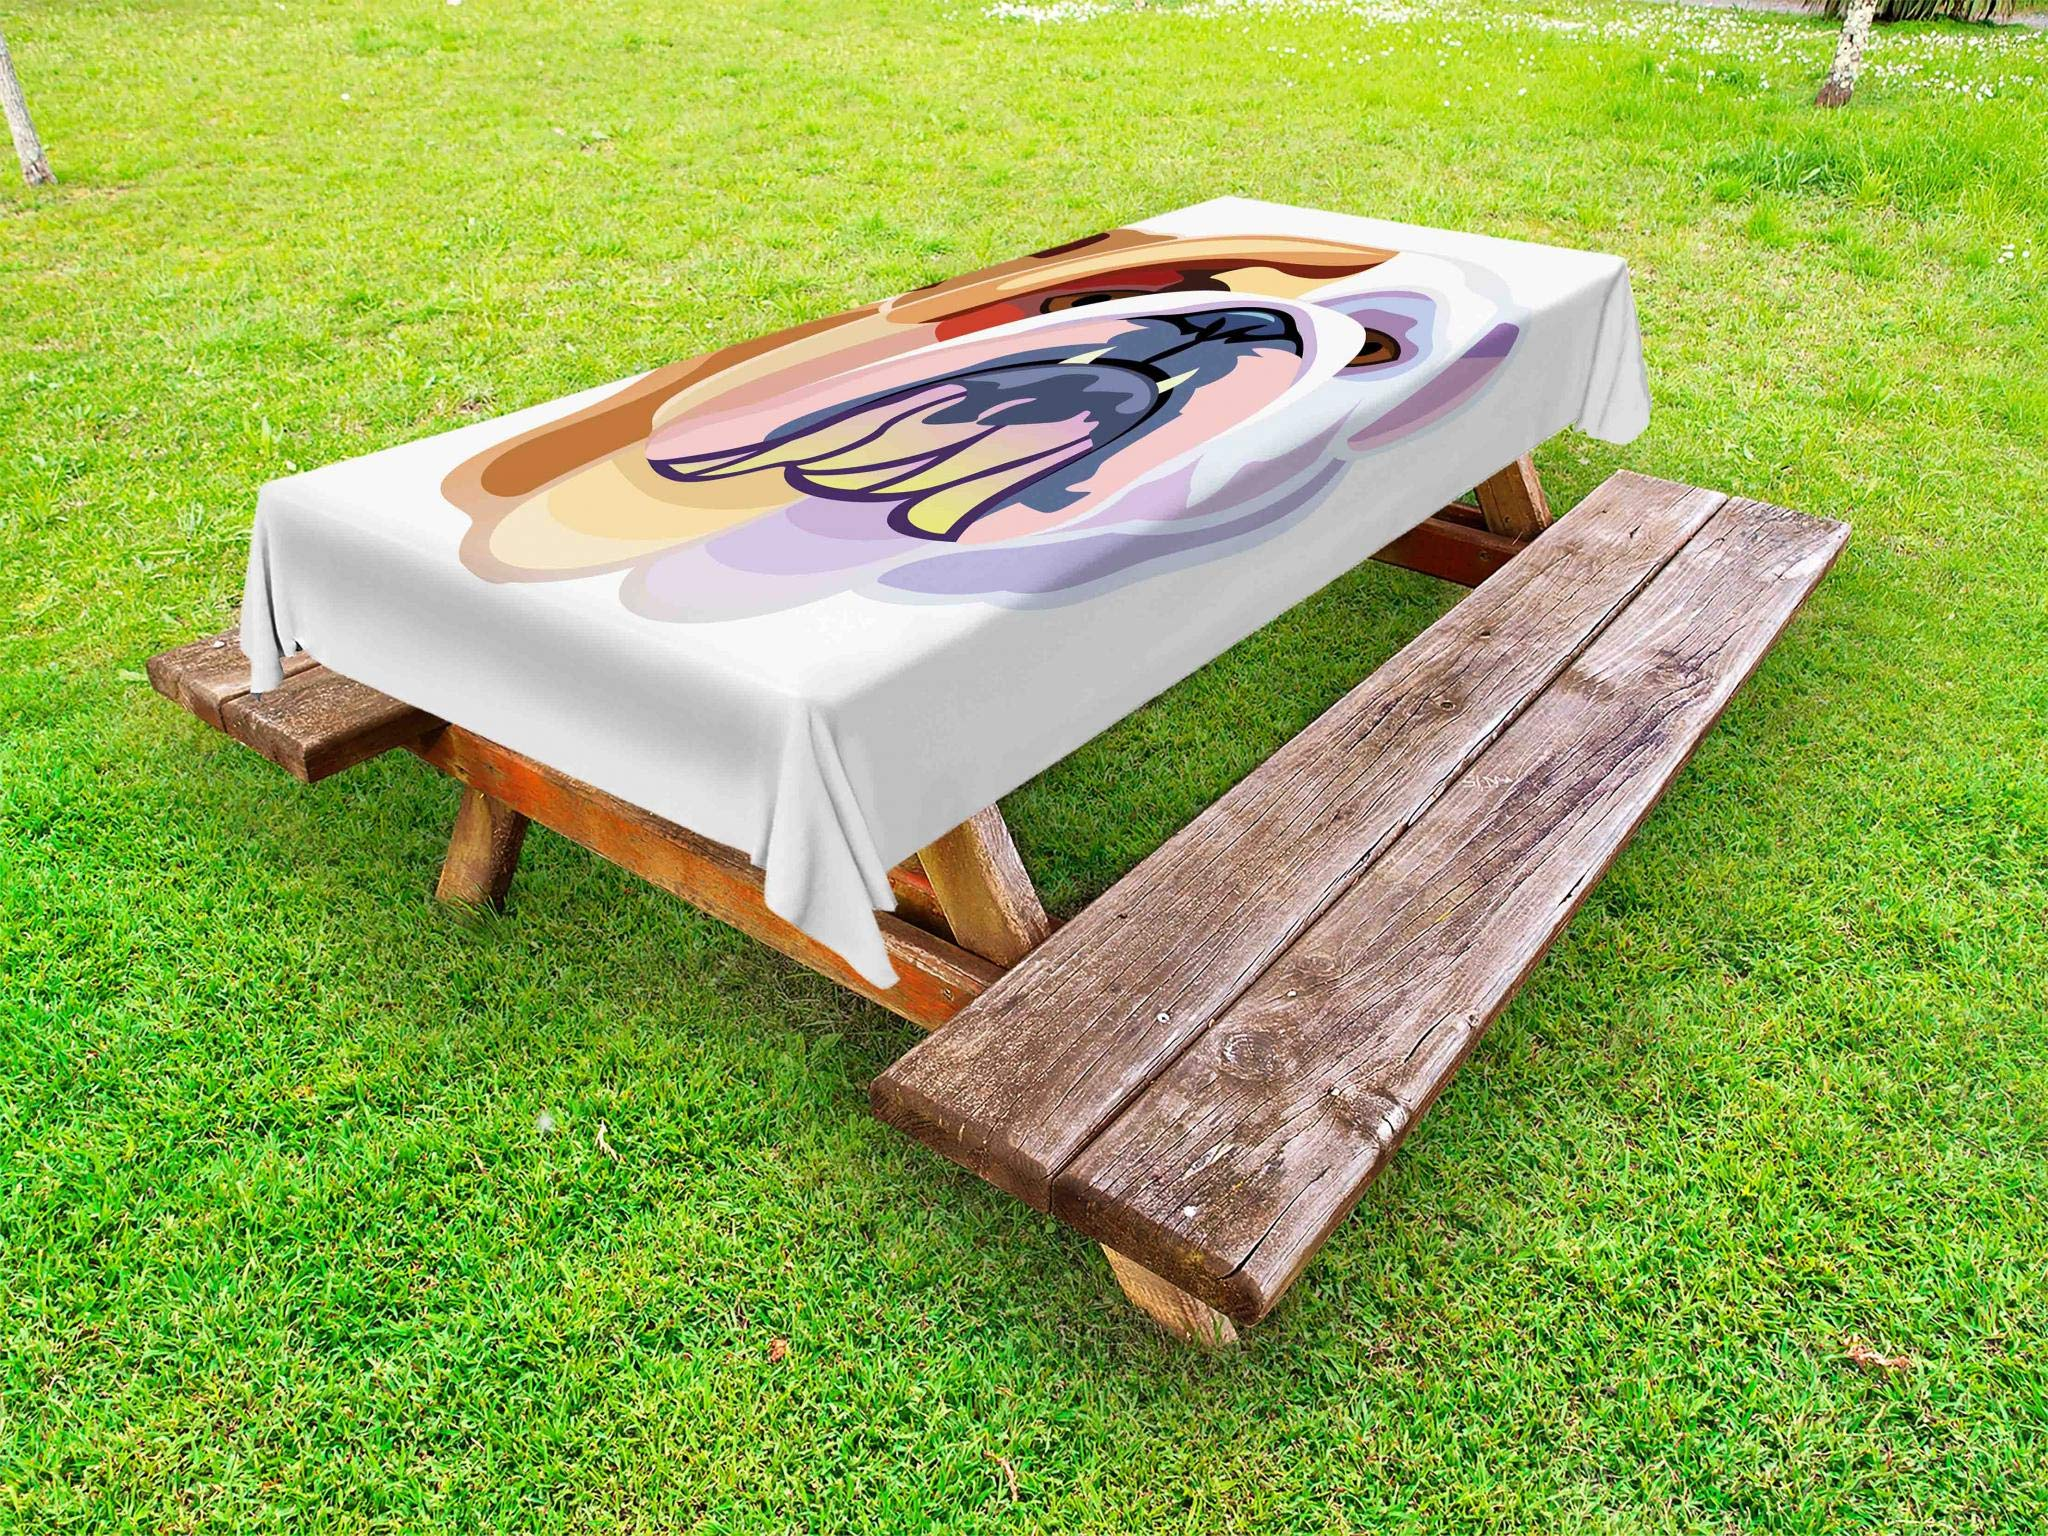 Ambesonne English Bulldog Outdoor Tablecloth, Bicolor Cartoon Style Bulldog Portrait Abstract Animal Design, Decorative Washable Picnic Table Cloth, 58 X 120 Inches, Brown Pale Muave Pink